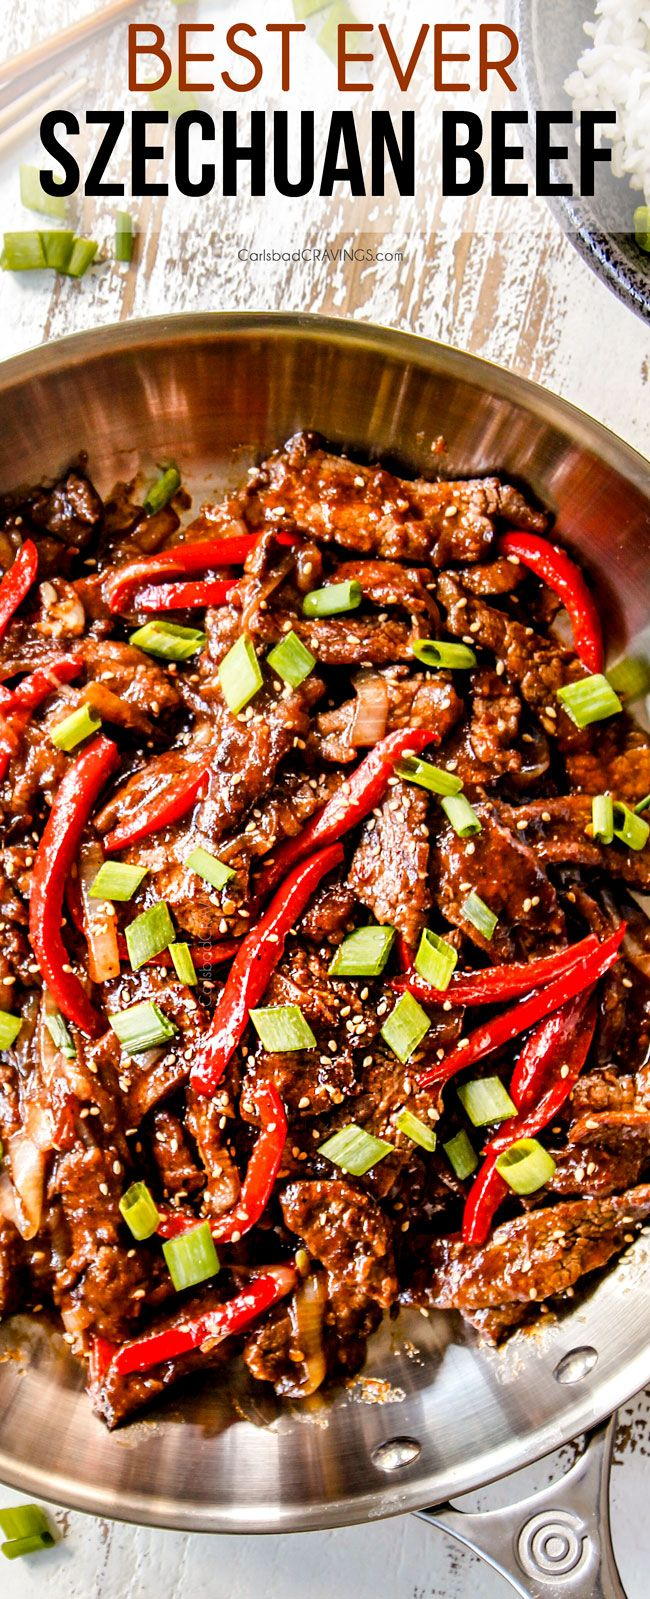 the BEST Szechuan Beef that is easy to make but better than any restaurant! It boasts buttery tender beef enveloped in dynamic spicy sauce you have to taste to believe! #stirfry #beeffoodrecipes #beef #beefrecipes #chinesefoodrecipes #chinesefood #szechuan #dinner #dinnerrecipes #dinnerideas #recipes #recipeoftheday #recipeseas #marinadeforbeef